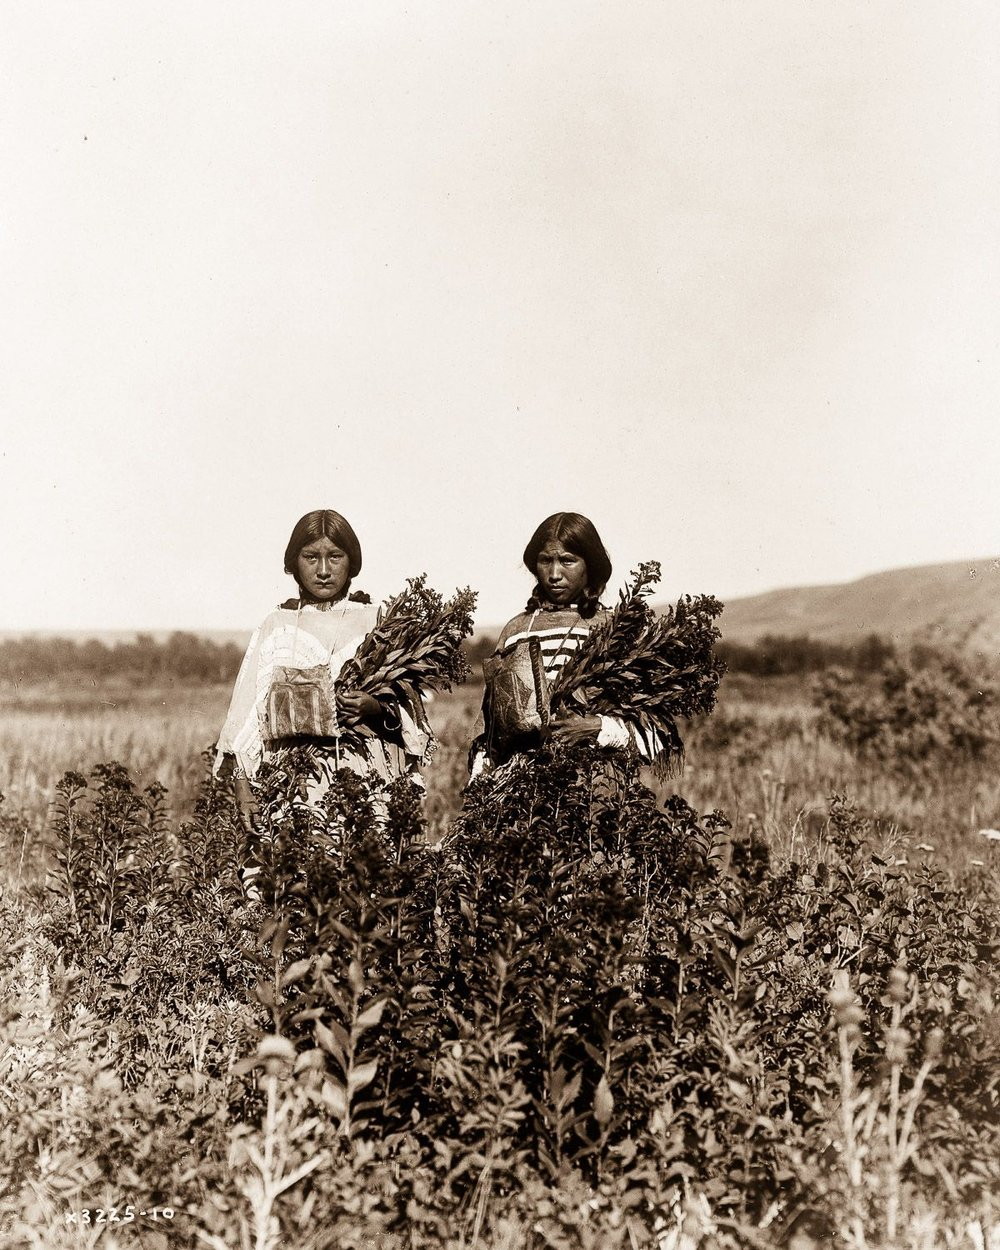 Piegan girls gather goldenrod , 1910.  ©EDWARD S. CURTIS/LIBRARY OF CONGRESS